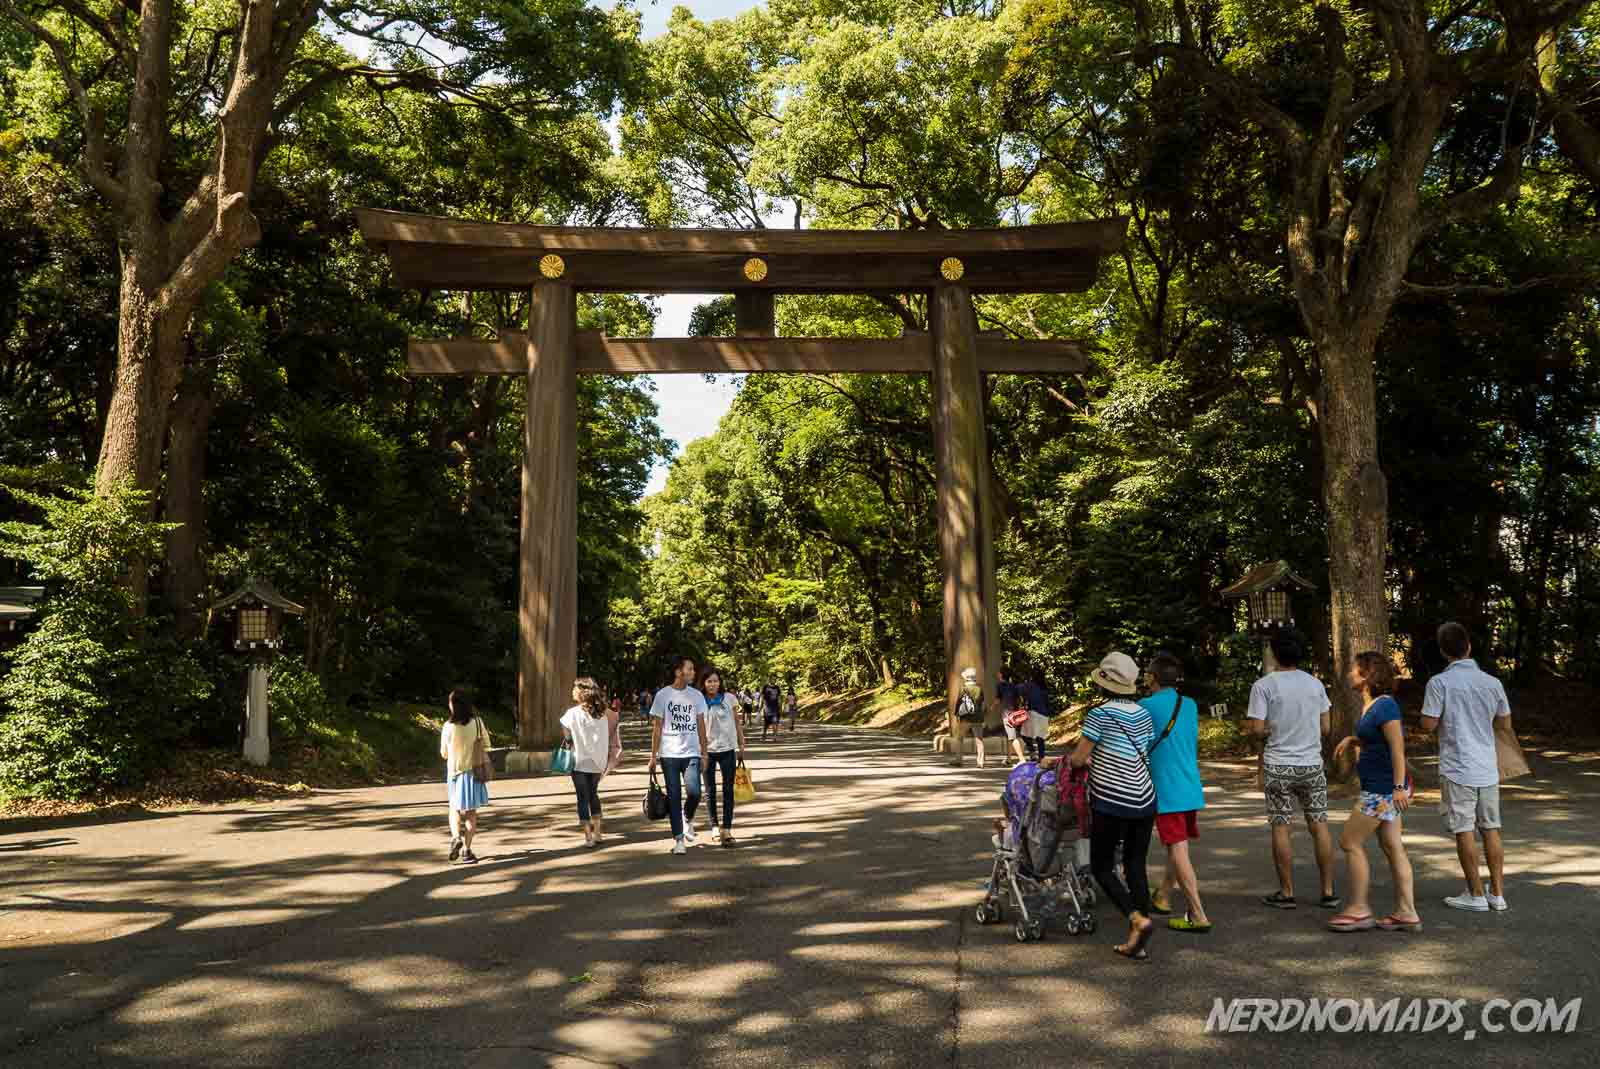 It Was Great Walking On The Broad Pathway Surrounded By Tall Green Trees And Eventually Through 12m High Wooden Torii Gate